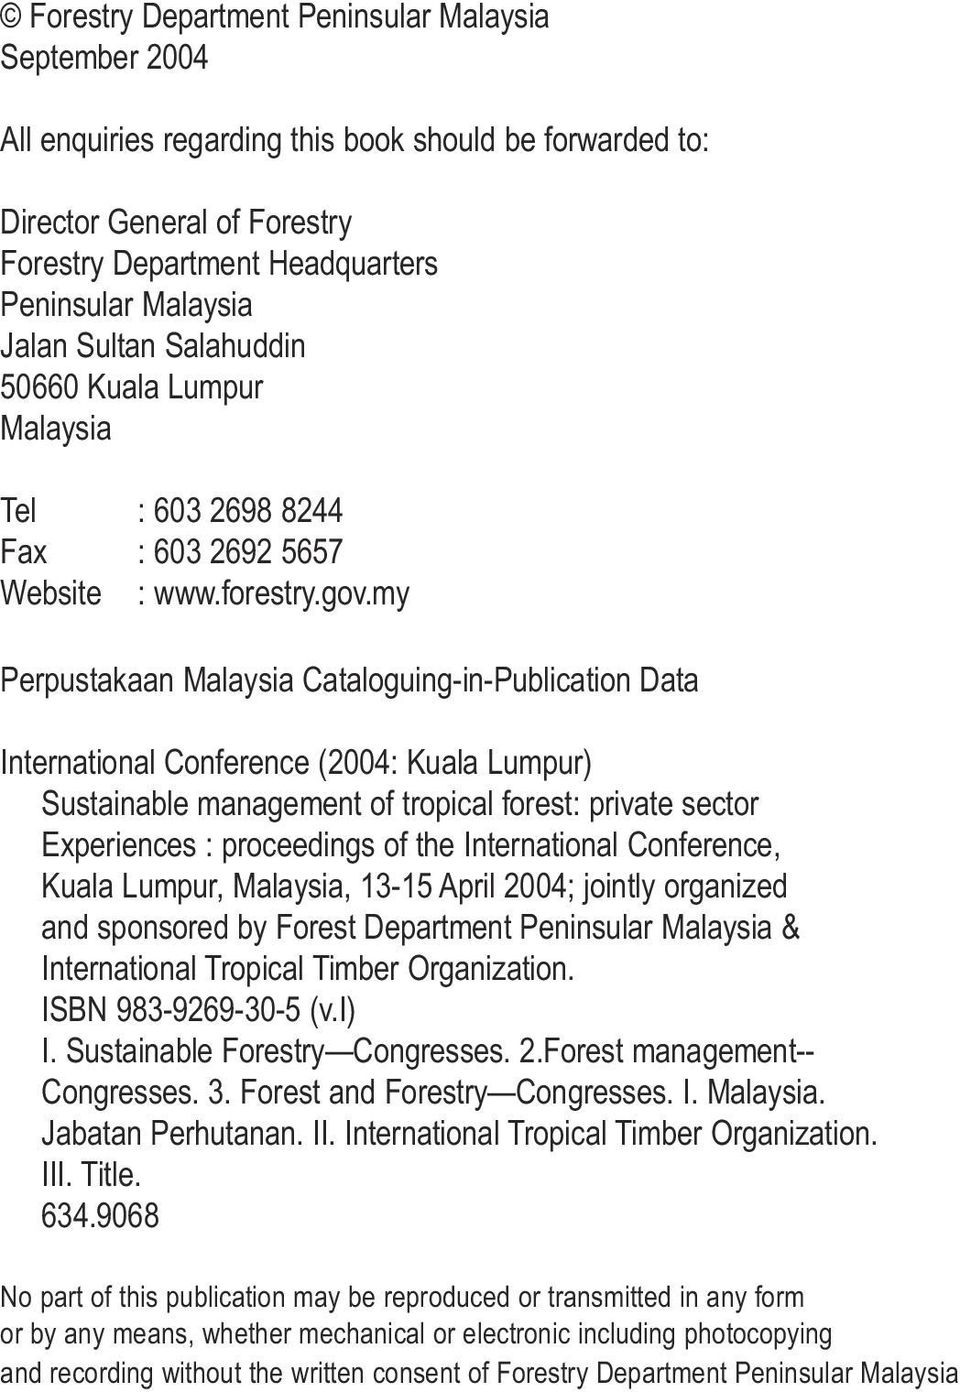 my Perpustakaan Malaysia Cataloguing-in-Publication Data International Conference (2004: Kuala Lumpur) Sustainable management of tropical forest: private sector Experiences : proceedings of the